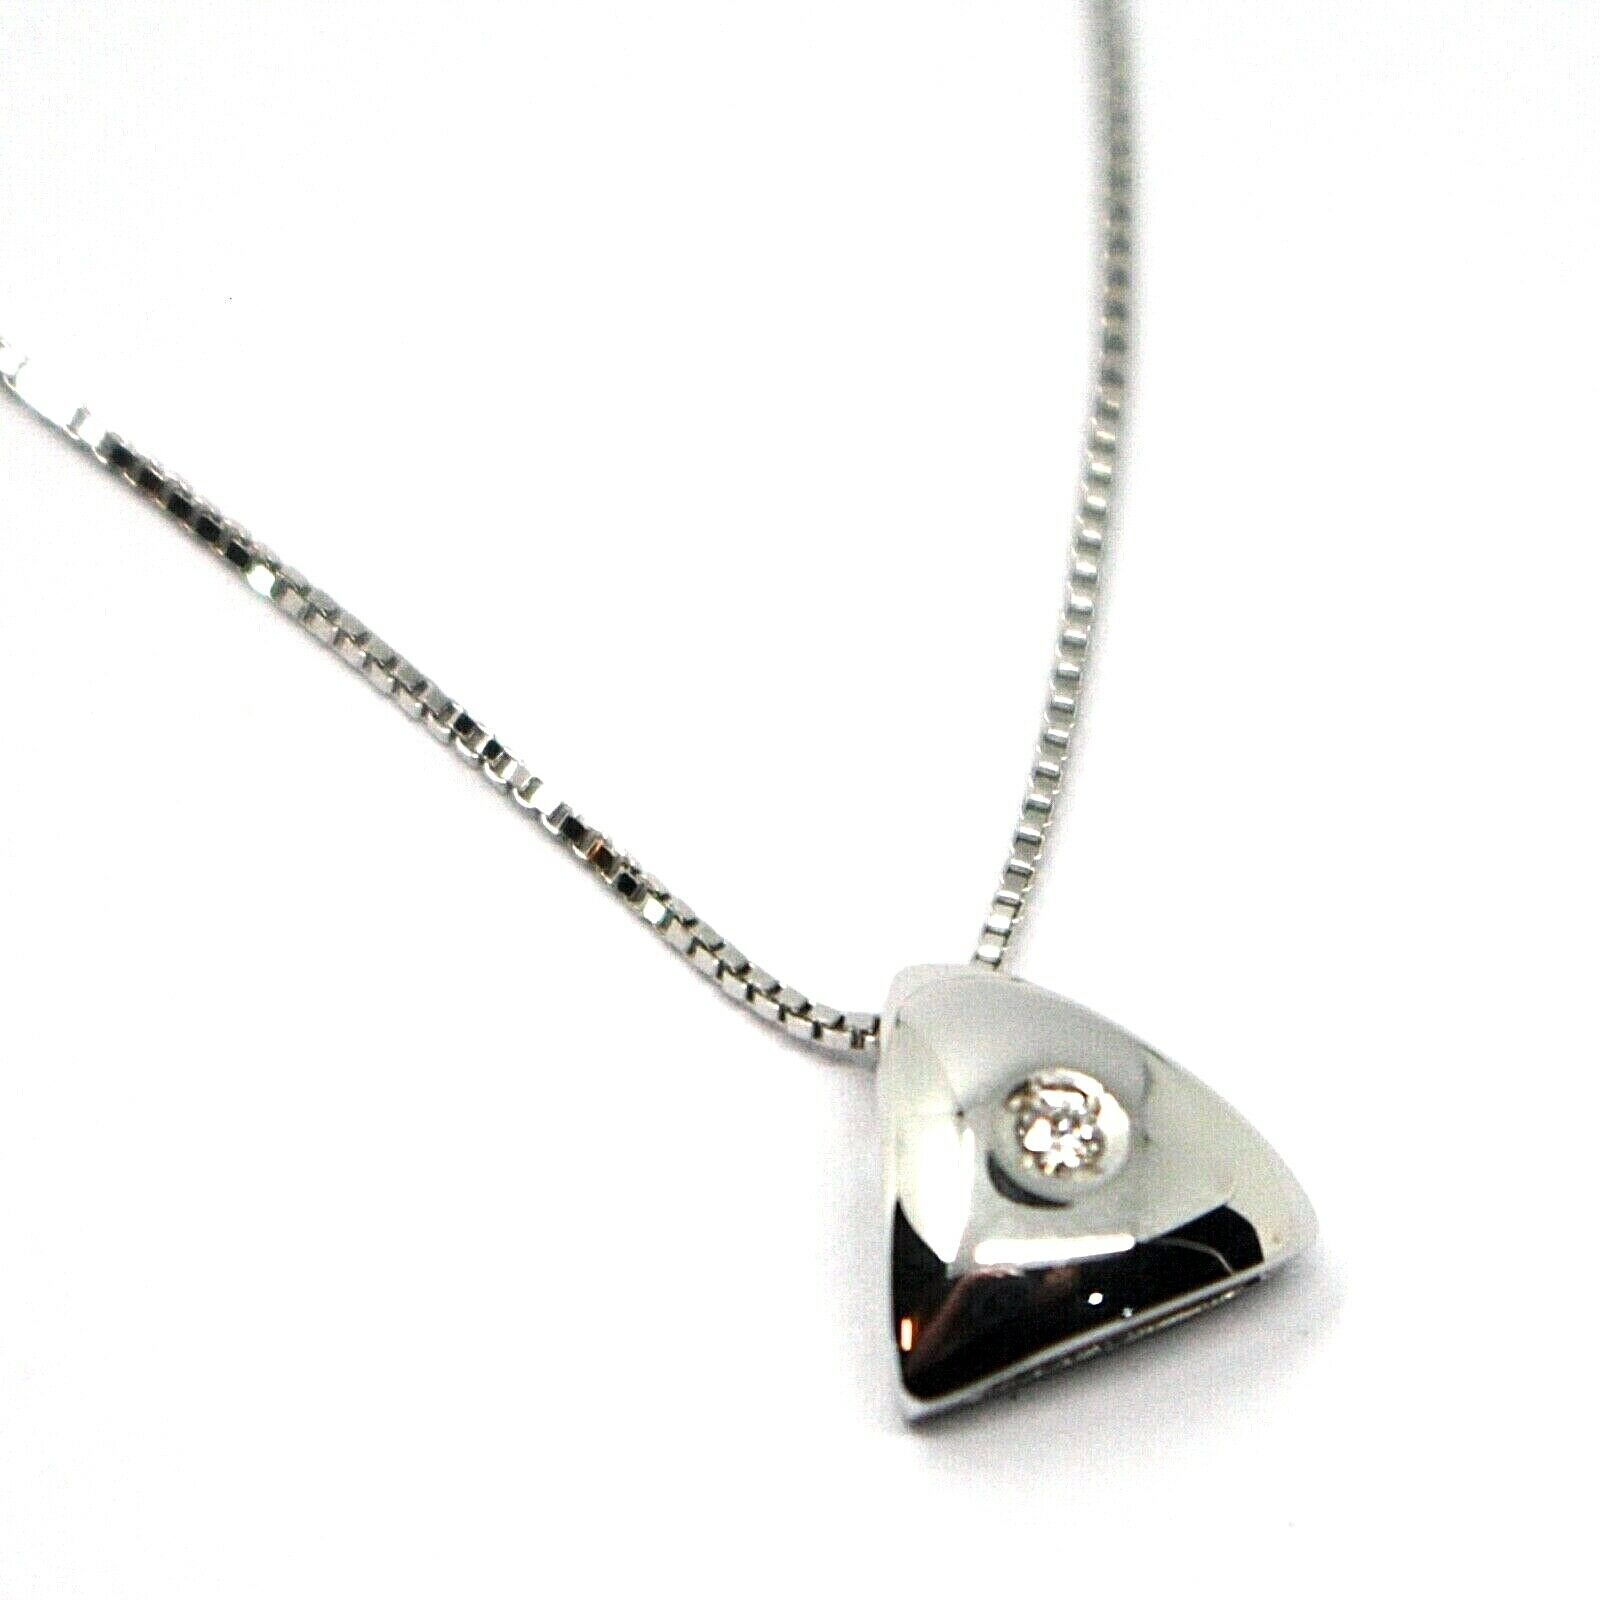 18K WHITE GOLD NECKLACE, TRIANGLE PENDANT WITH DIAMOND AND VENETIAN CHAIN